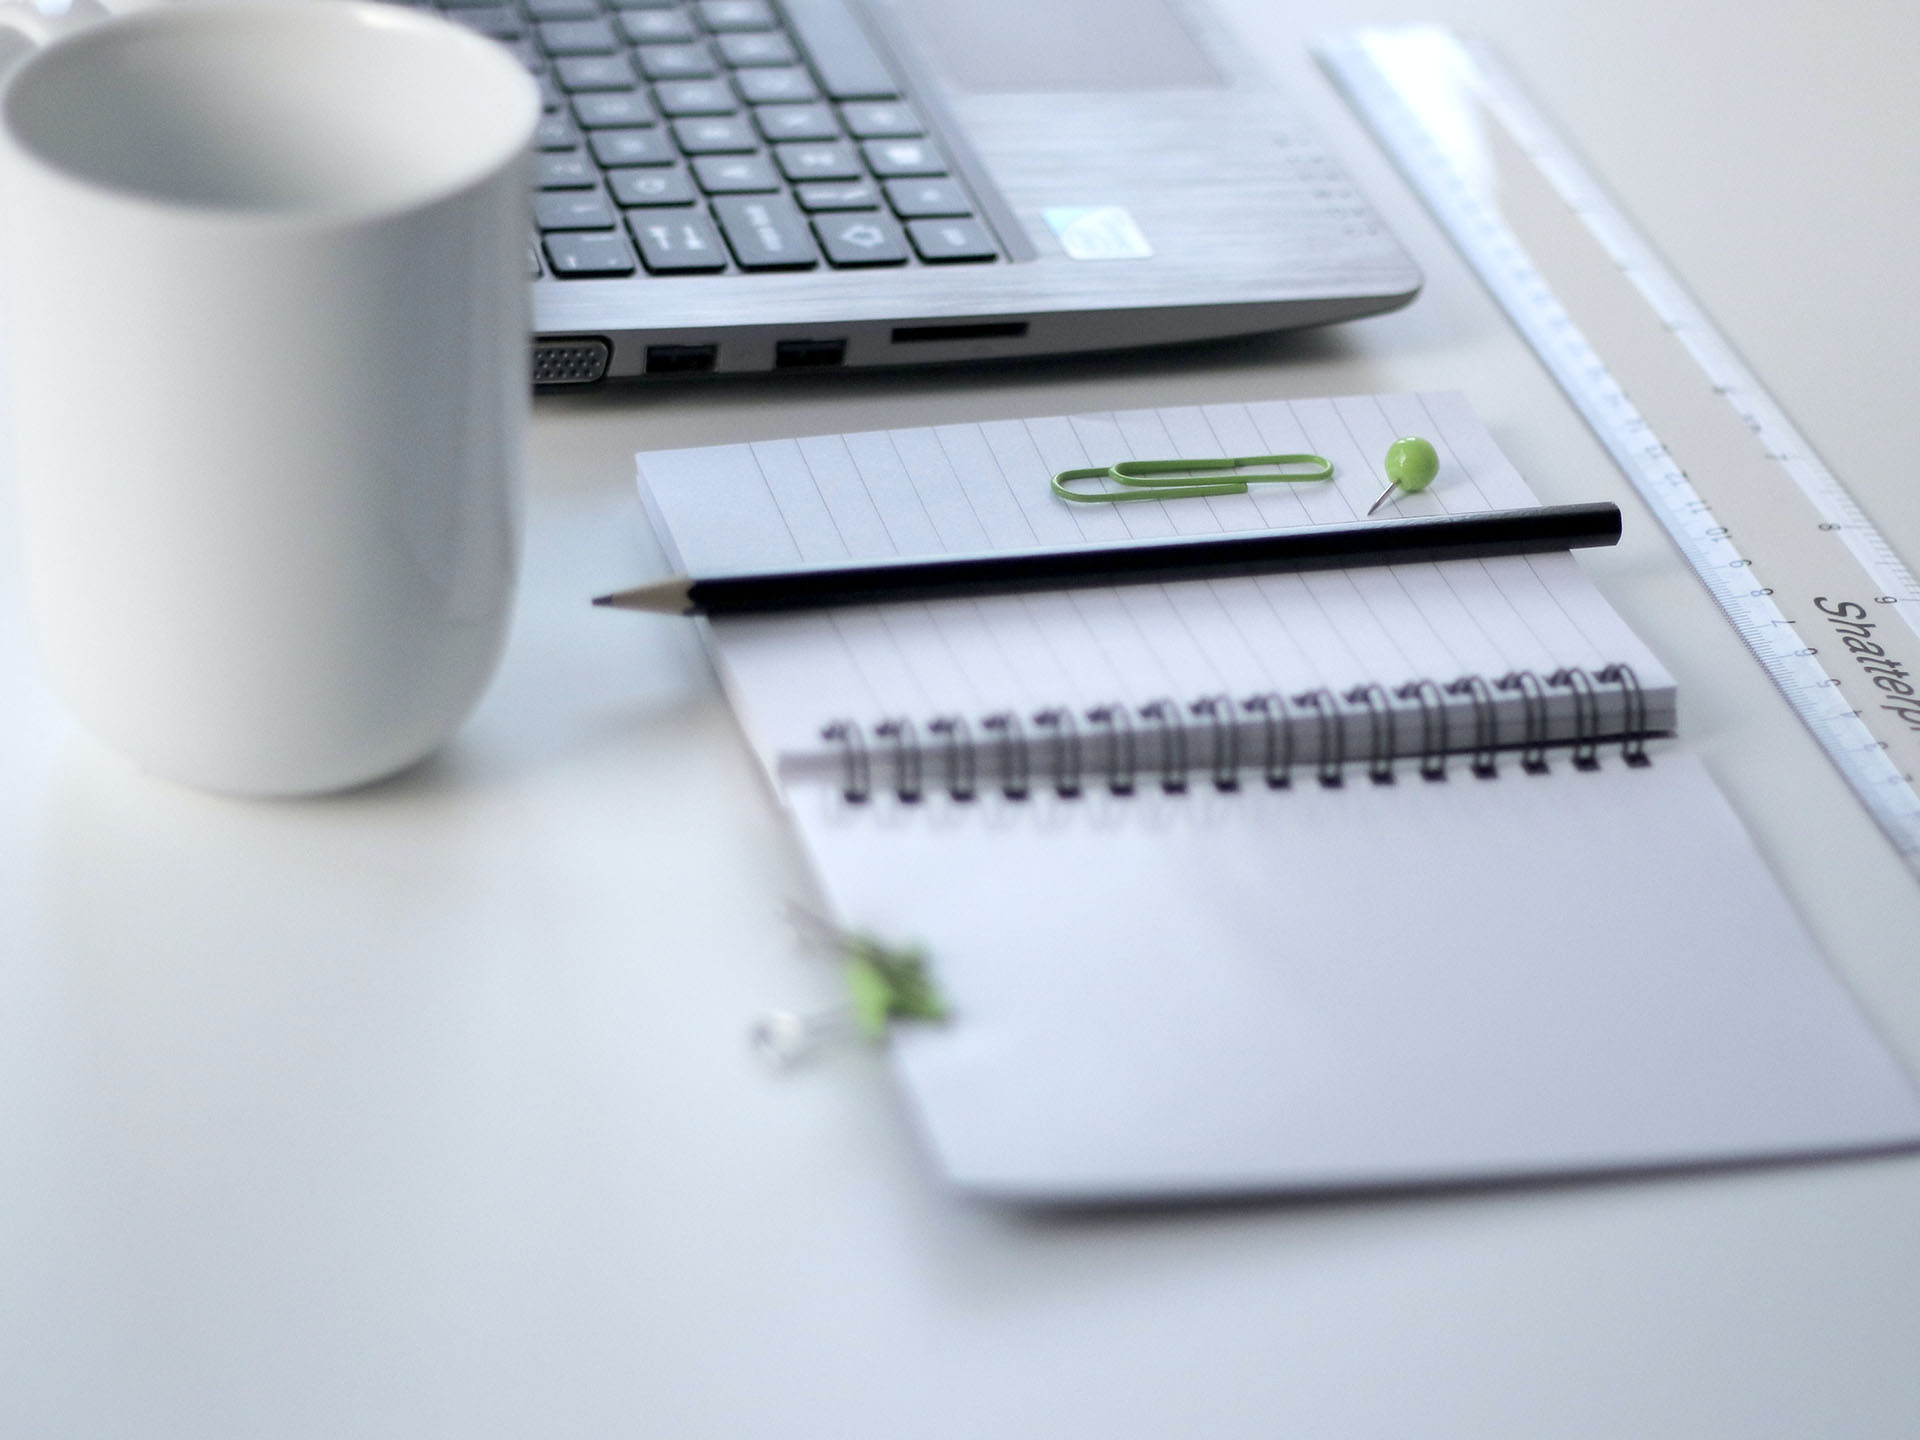 Using the Best Research Paper Writing Service for Your Business